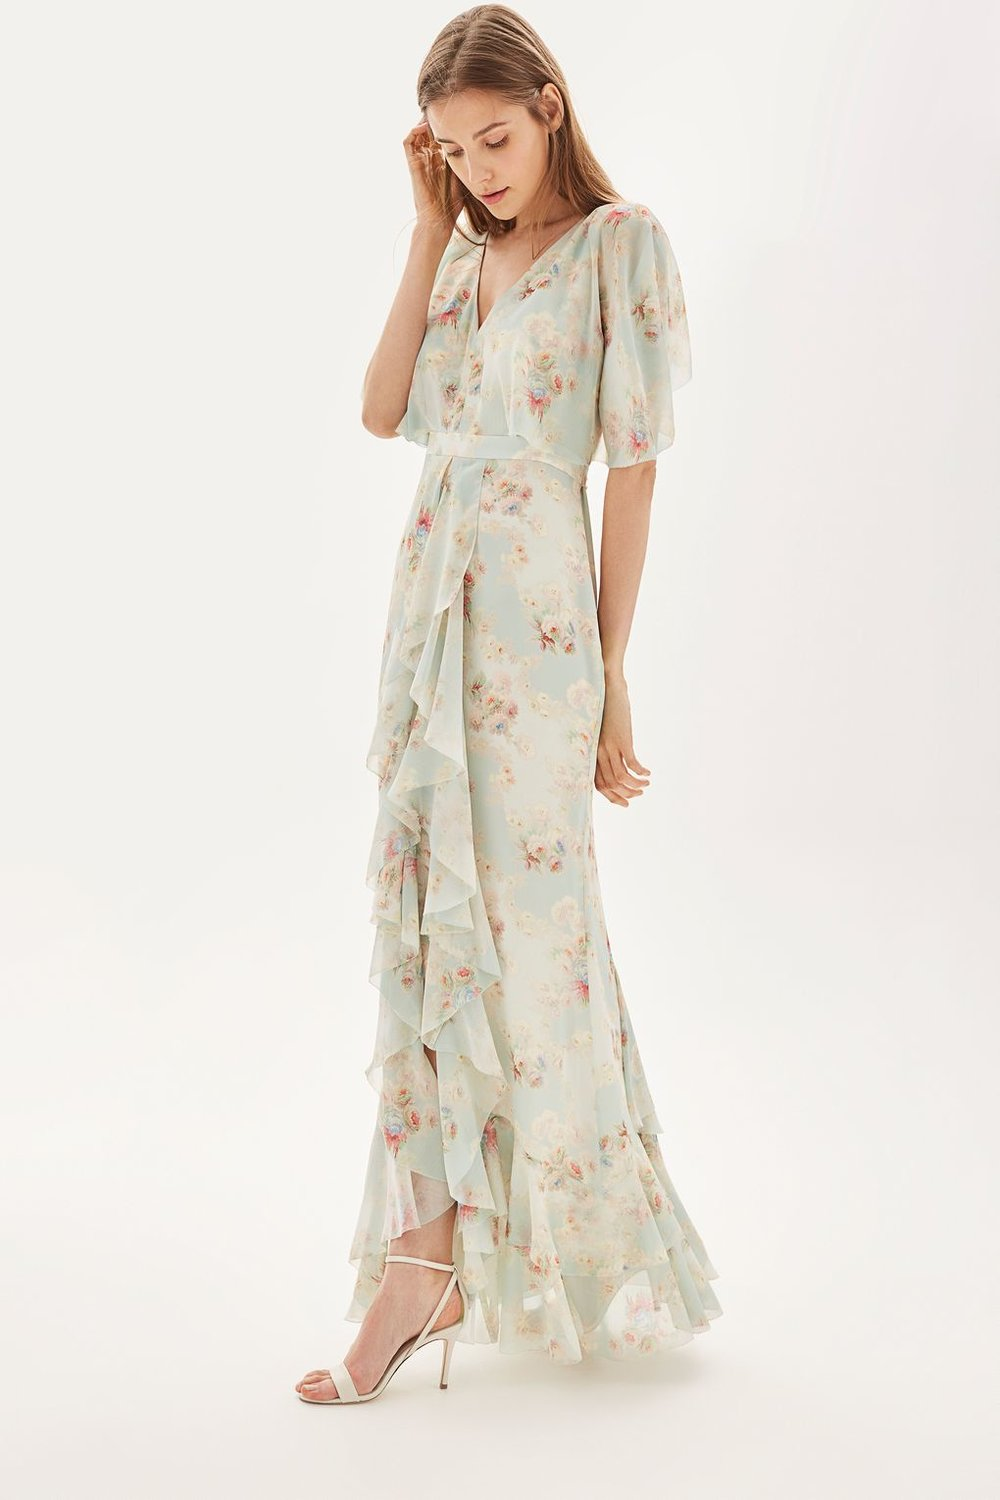 Muted Floral Print Maxi Dress - Topshop £165